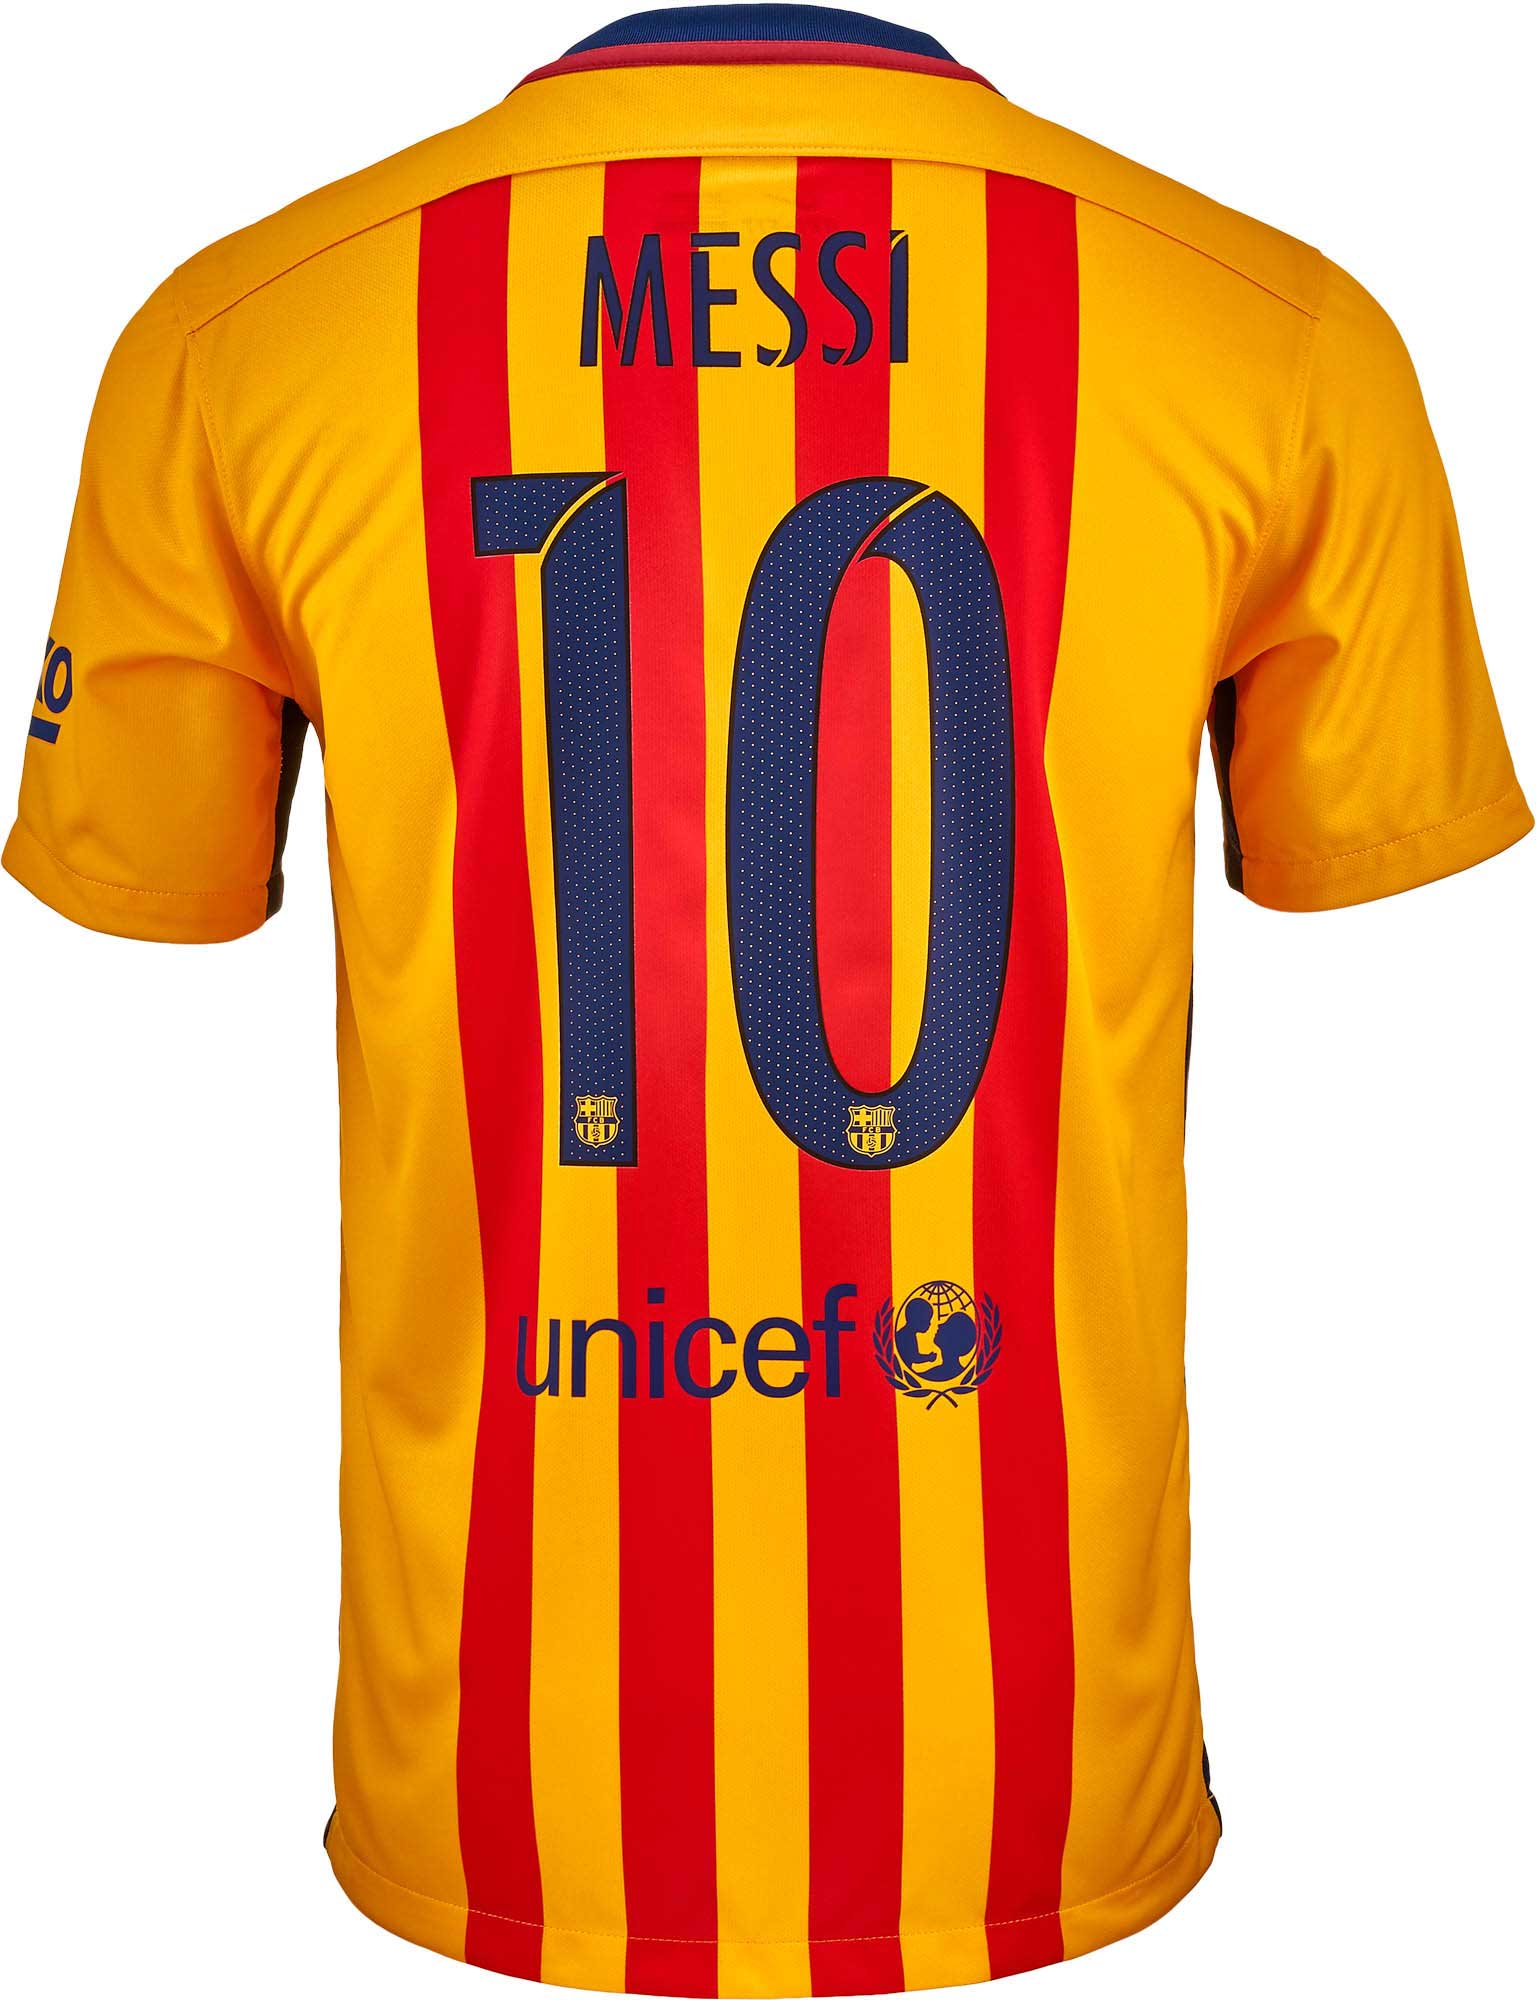 cbbbd0f32 reputable site 02960 641b4 lionel messi shirt number red